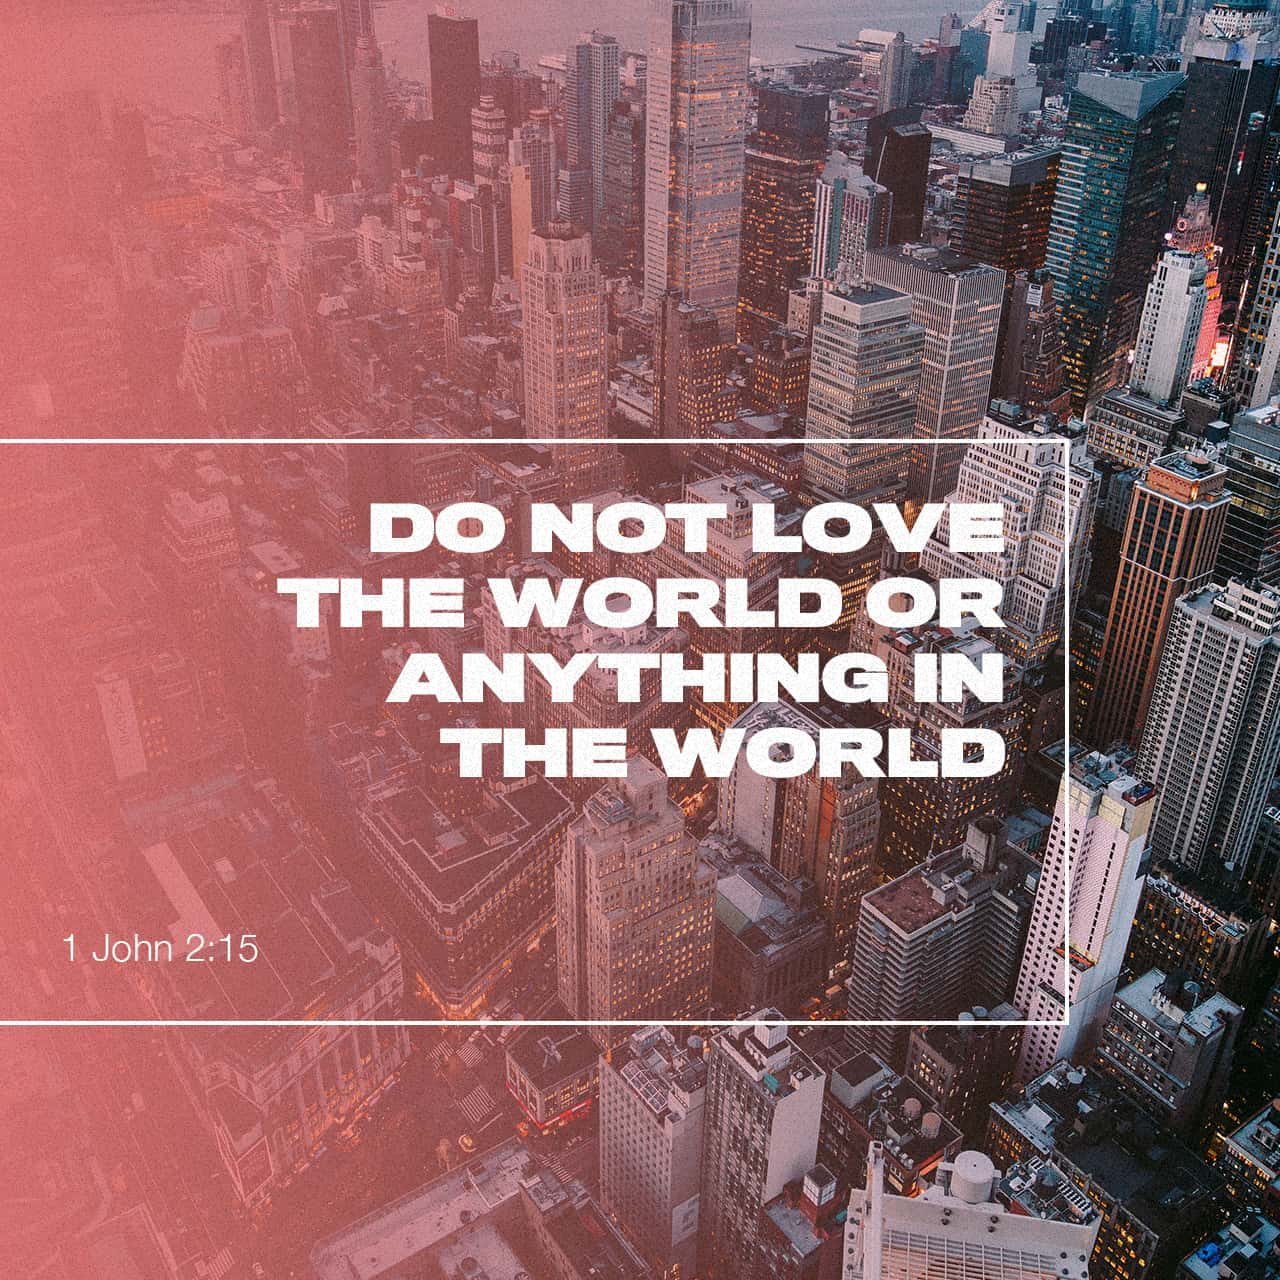 1 John 2:15 Do not love the world or the things in the world. If anyone loves the world, the love of the Father is not in him. | English Standard Version (ESV) | Download The Bible App Now